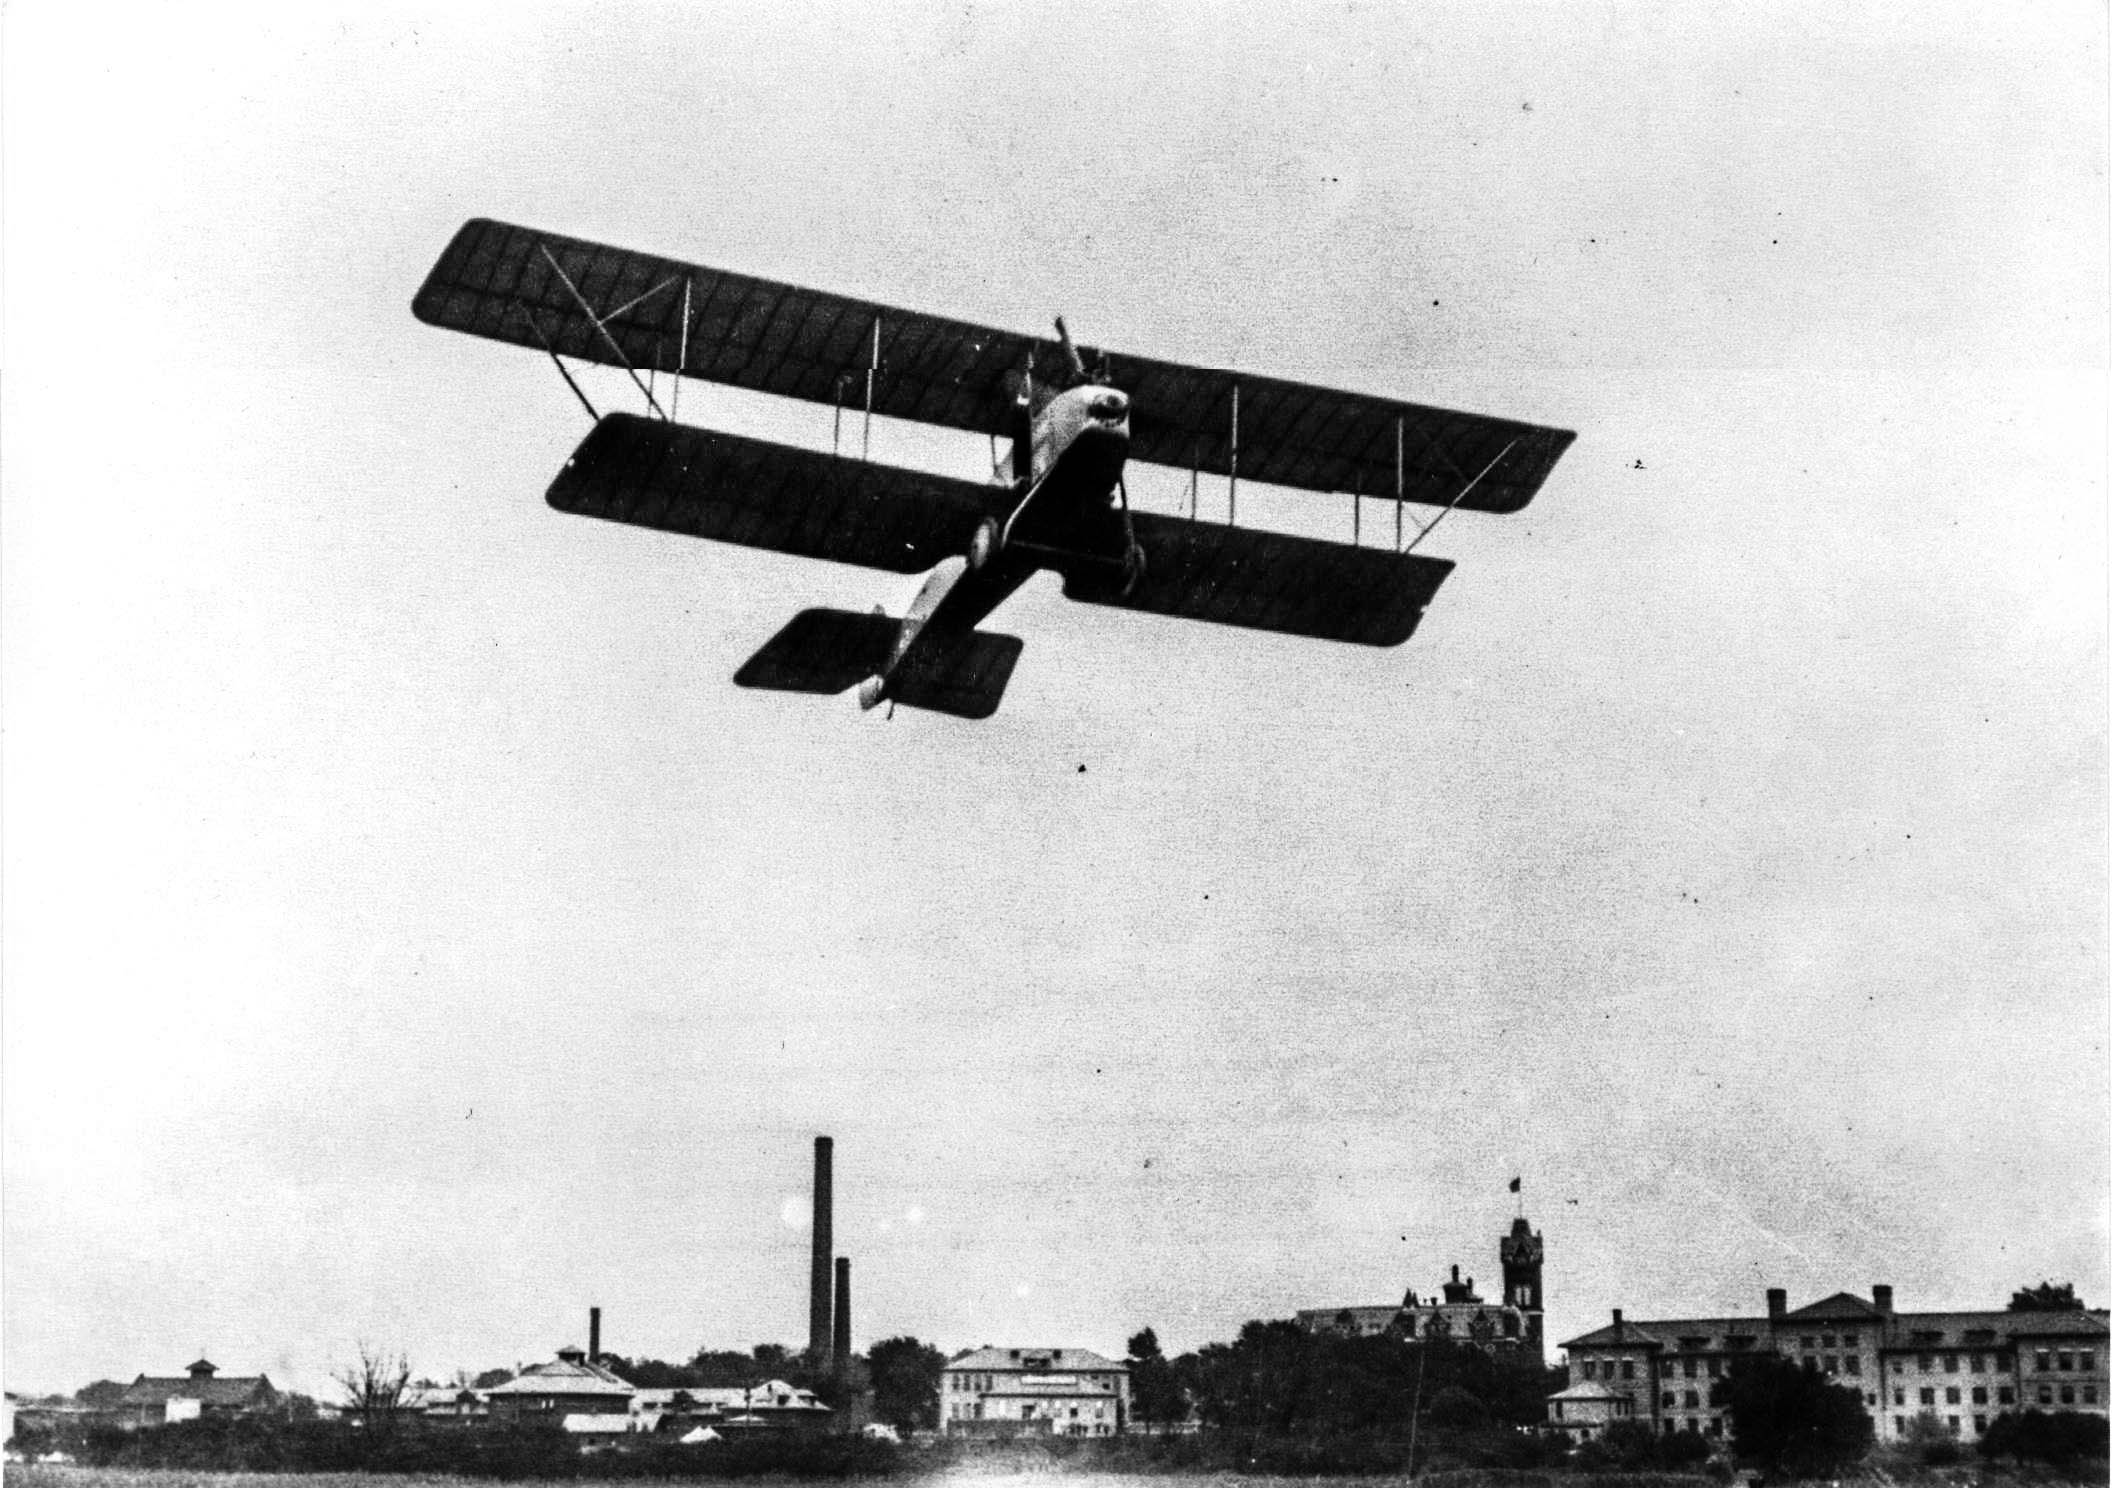 Biplane takes off in 1917